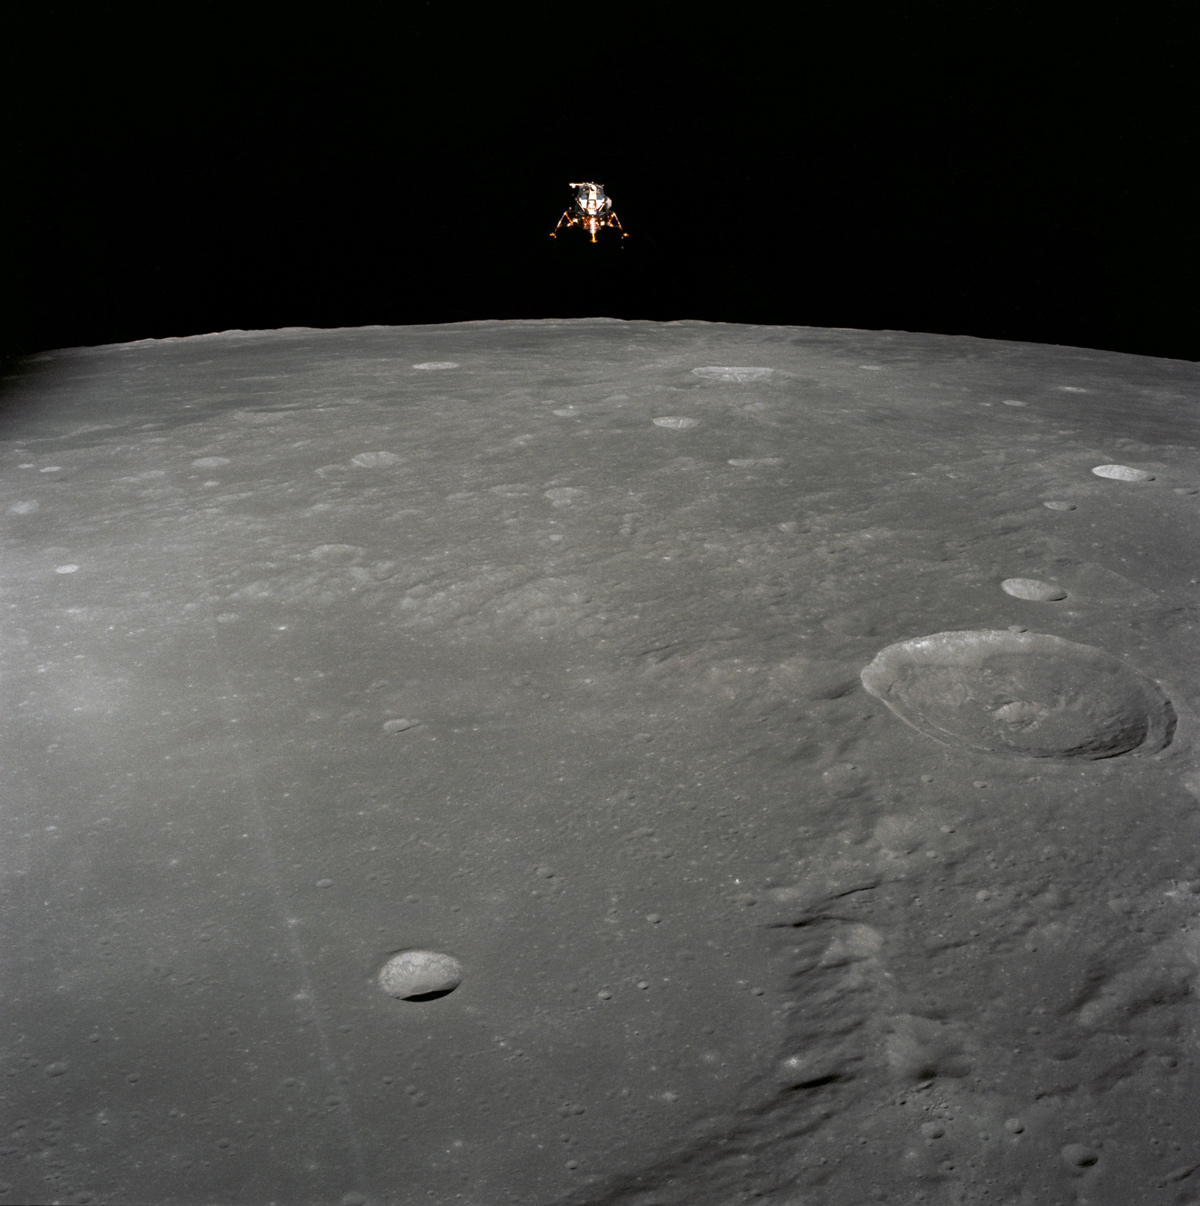 The Apollo 12 Lunar Module in lunar orbit